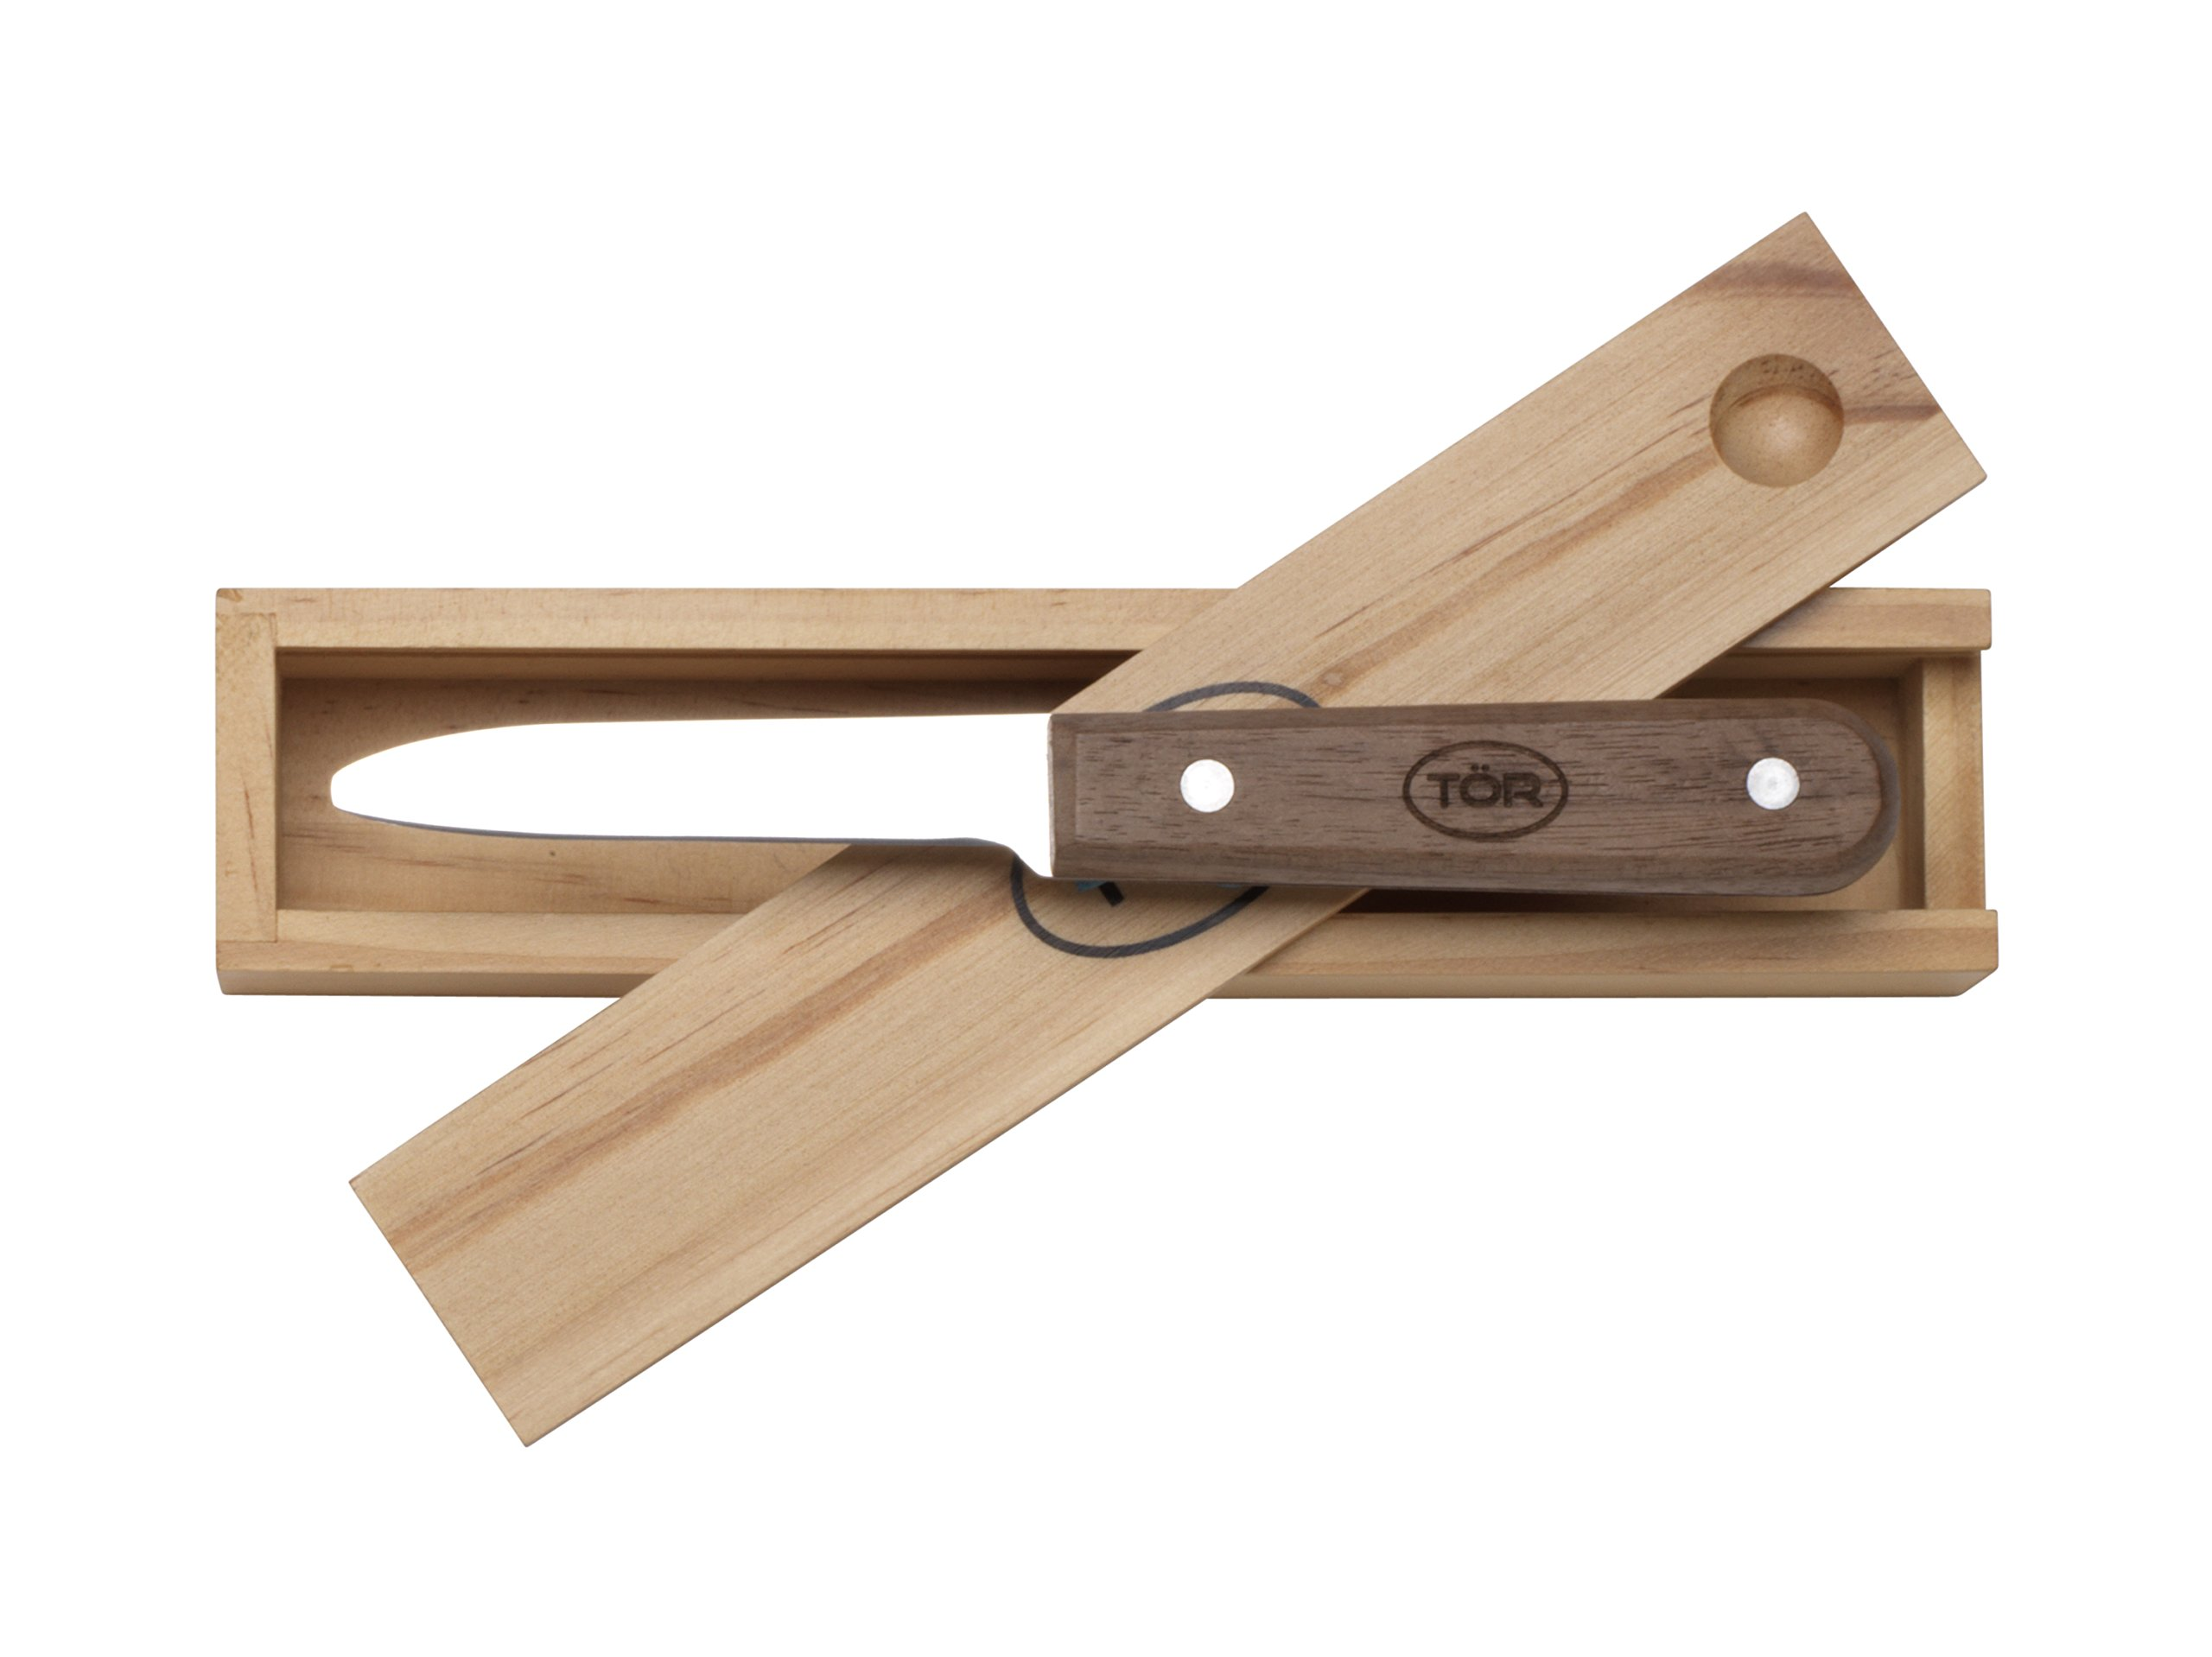 Clam Shucker Knife in Naturalwood Gift Box by TOR Kitchenware – The German Patented Stainless Steel Clam Shucking Knife and Opener Tool